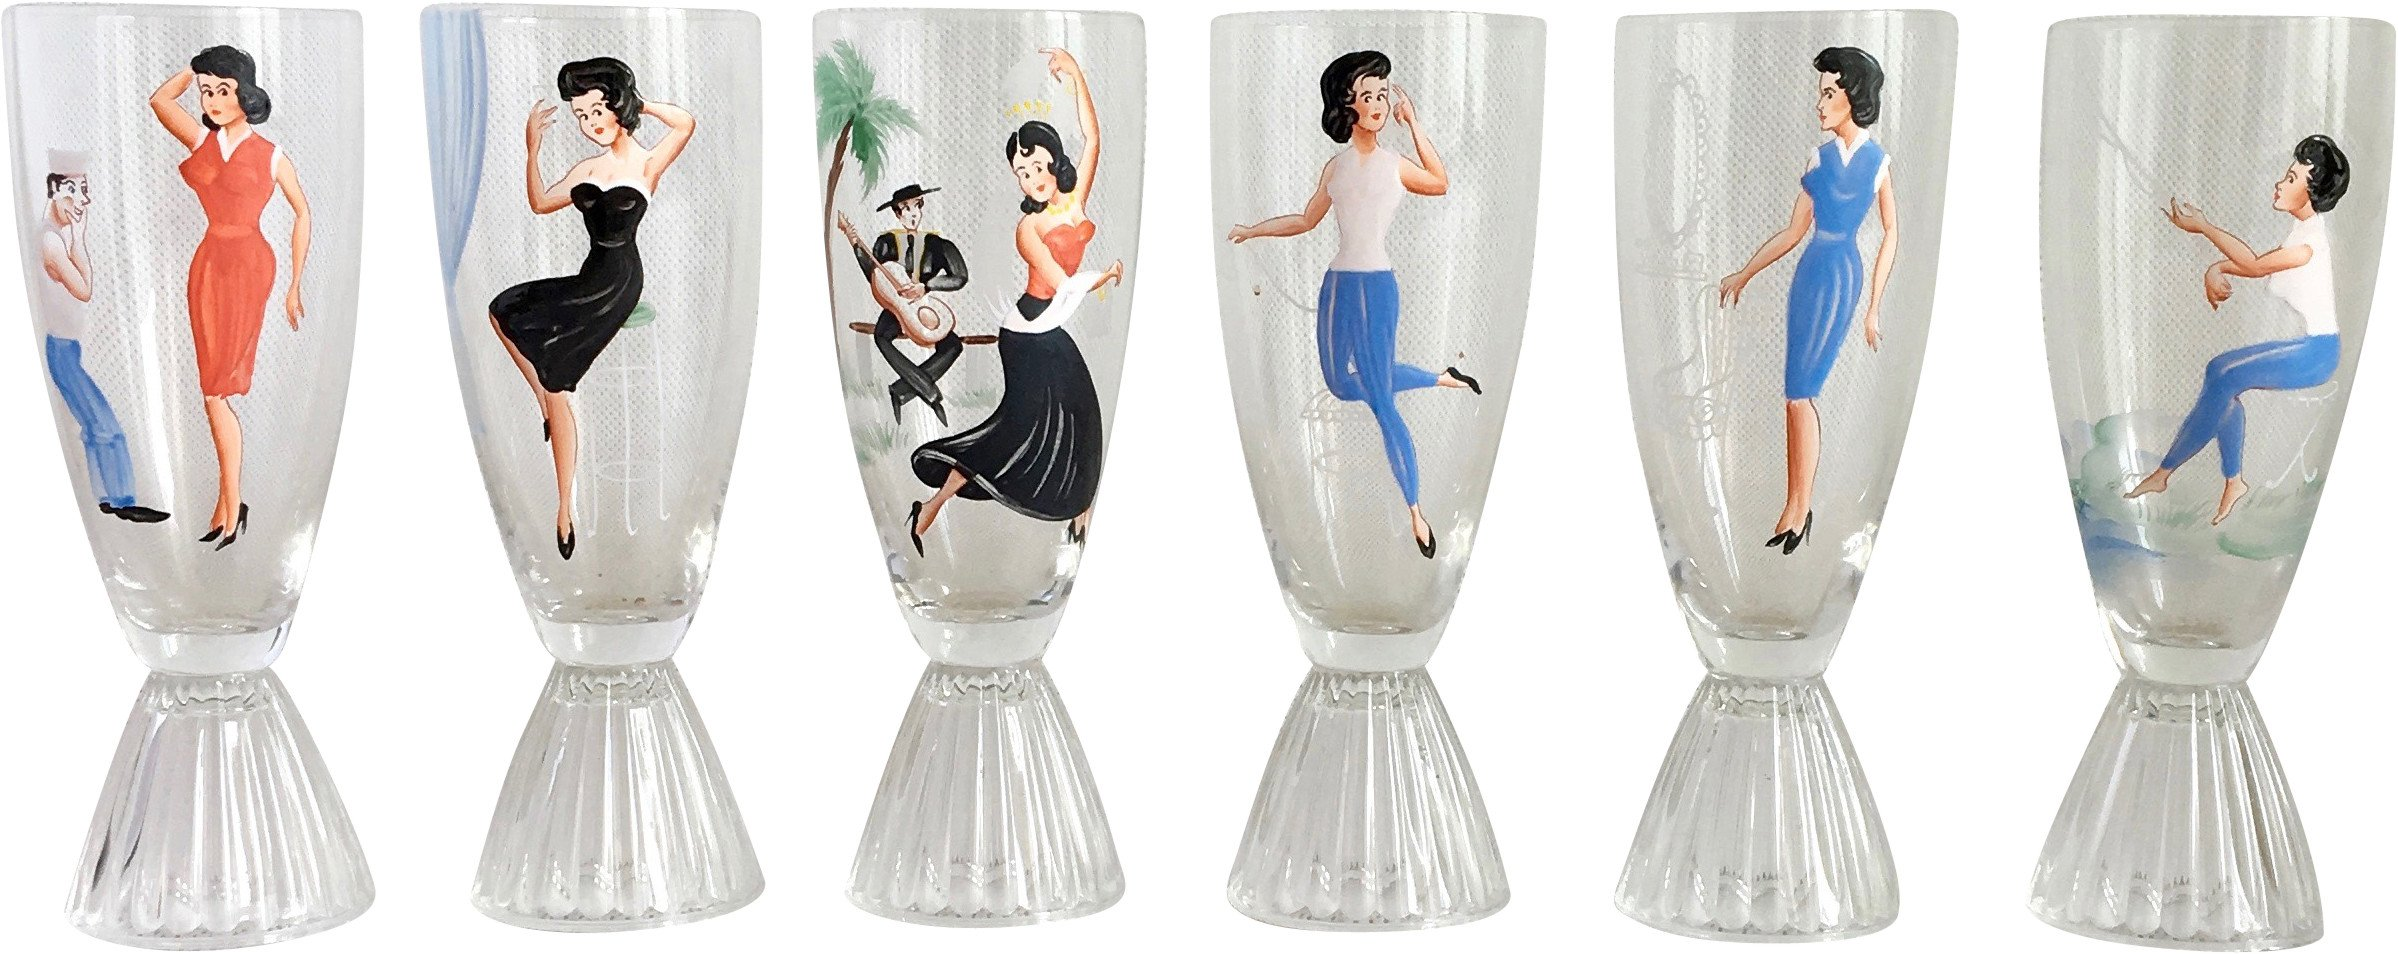 St of Six Glasses, 1960s